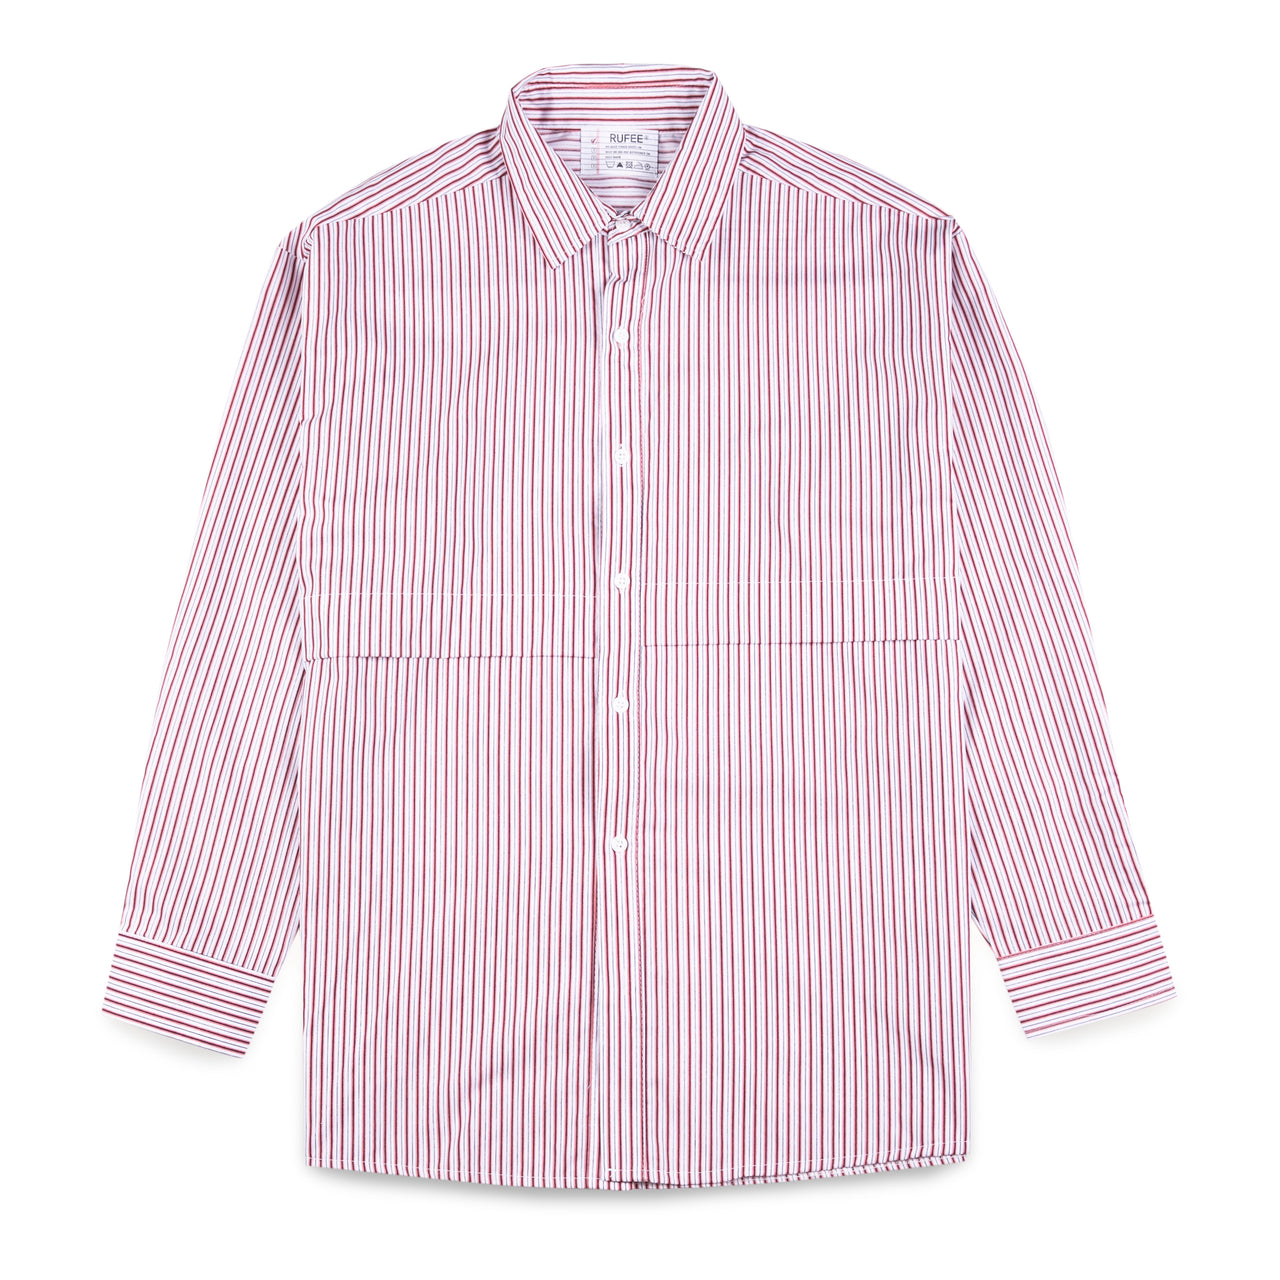 Rupee Pink Stripped Shirt